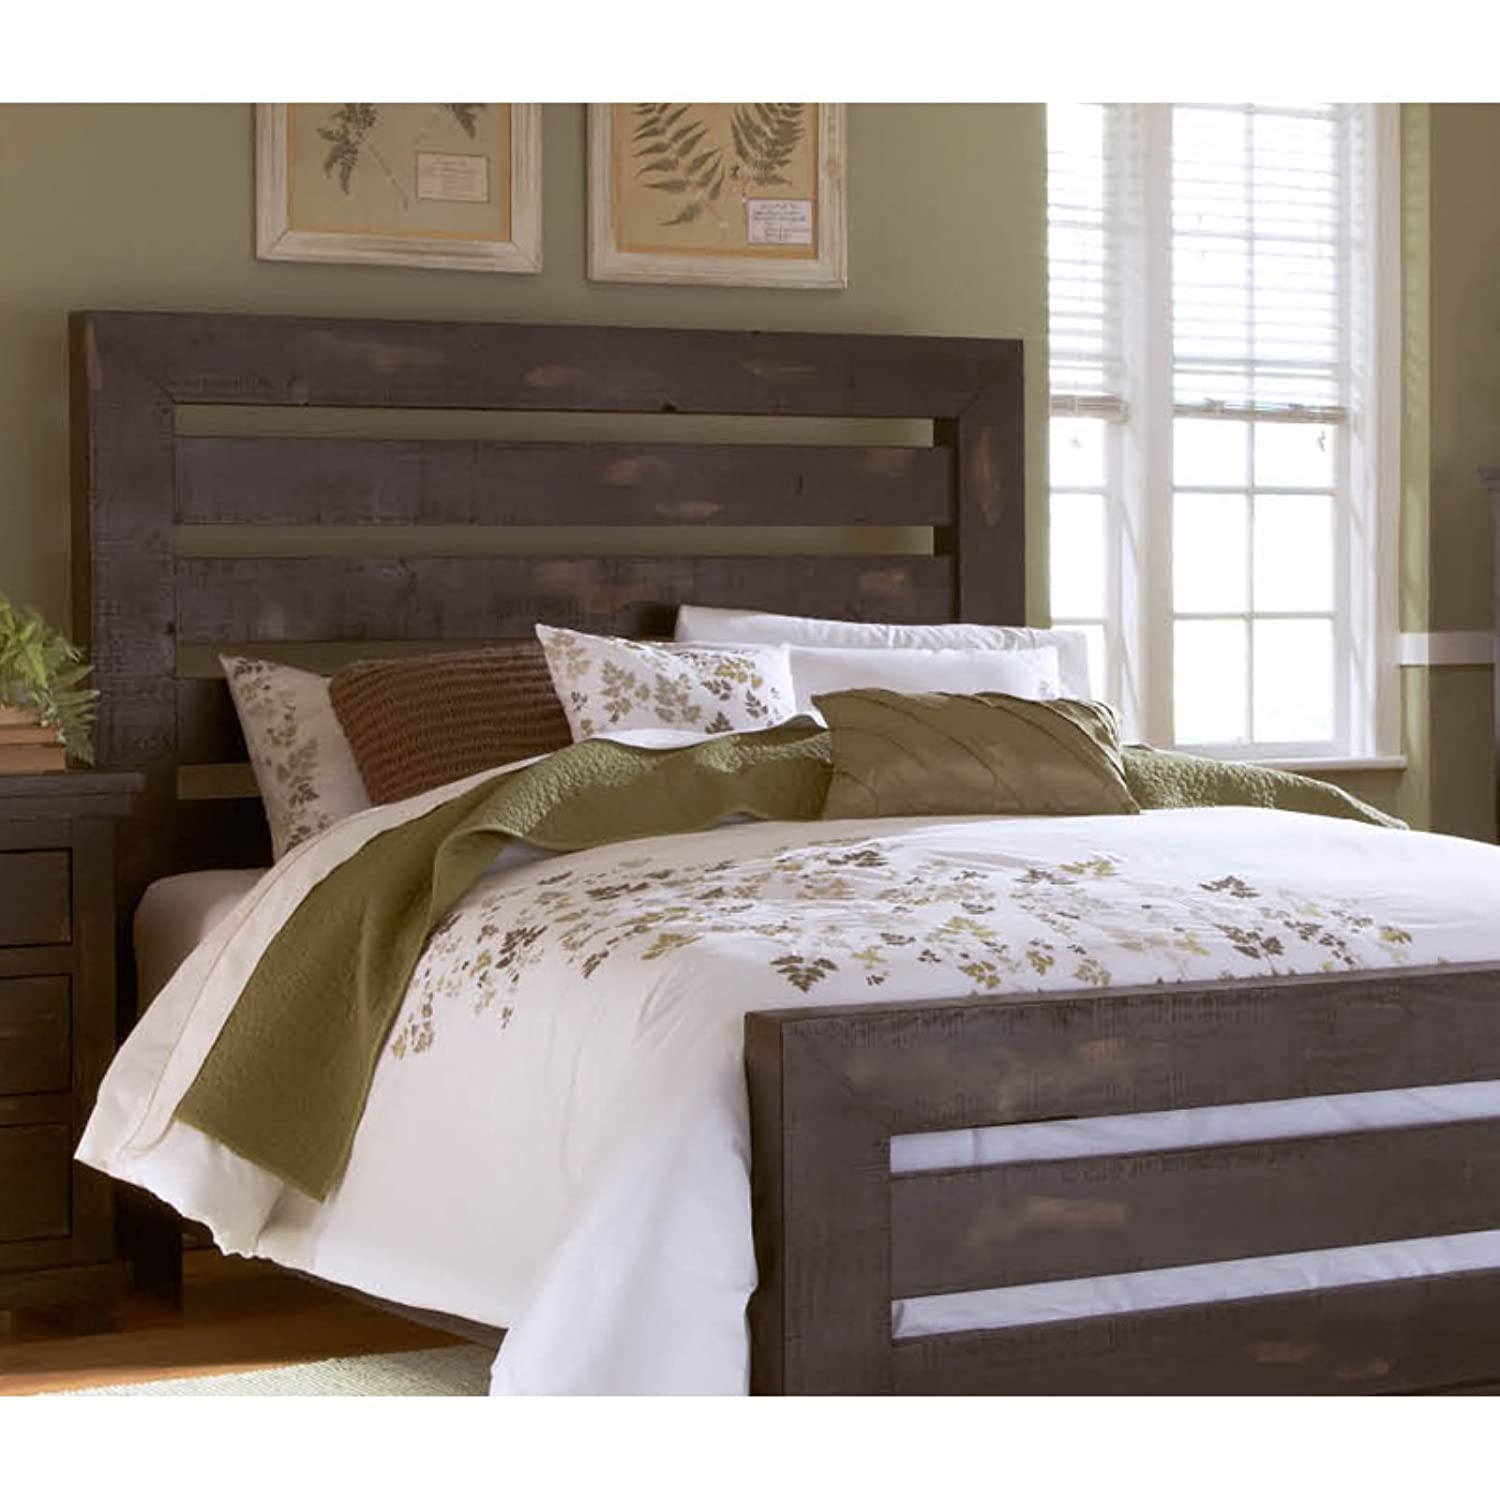 Amazon.com: Progressive Furniture Willow Distressed Headboard: Home  Improvement